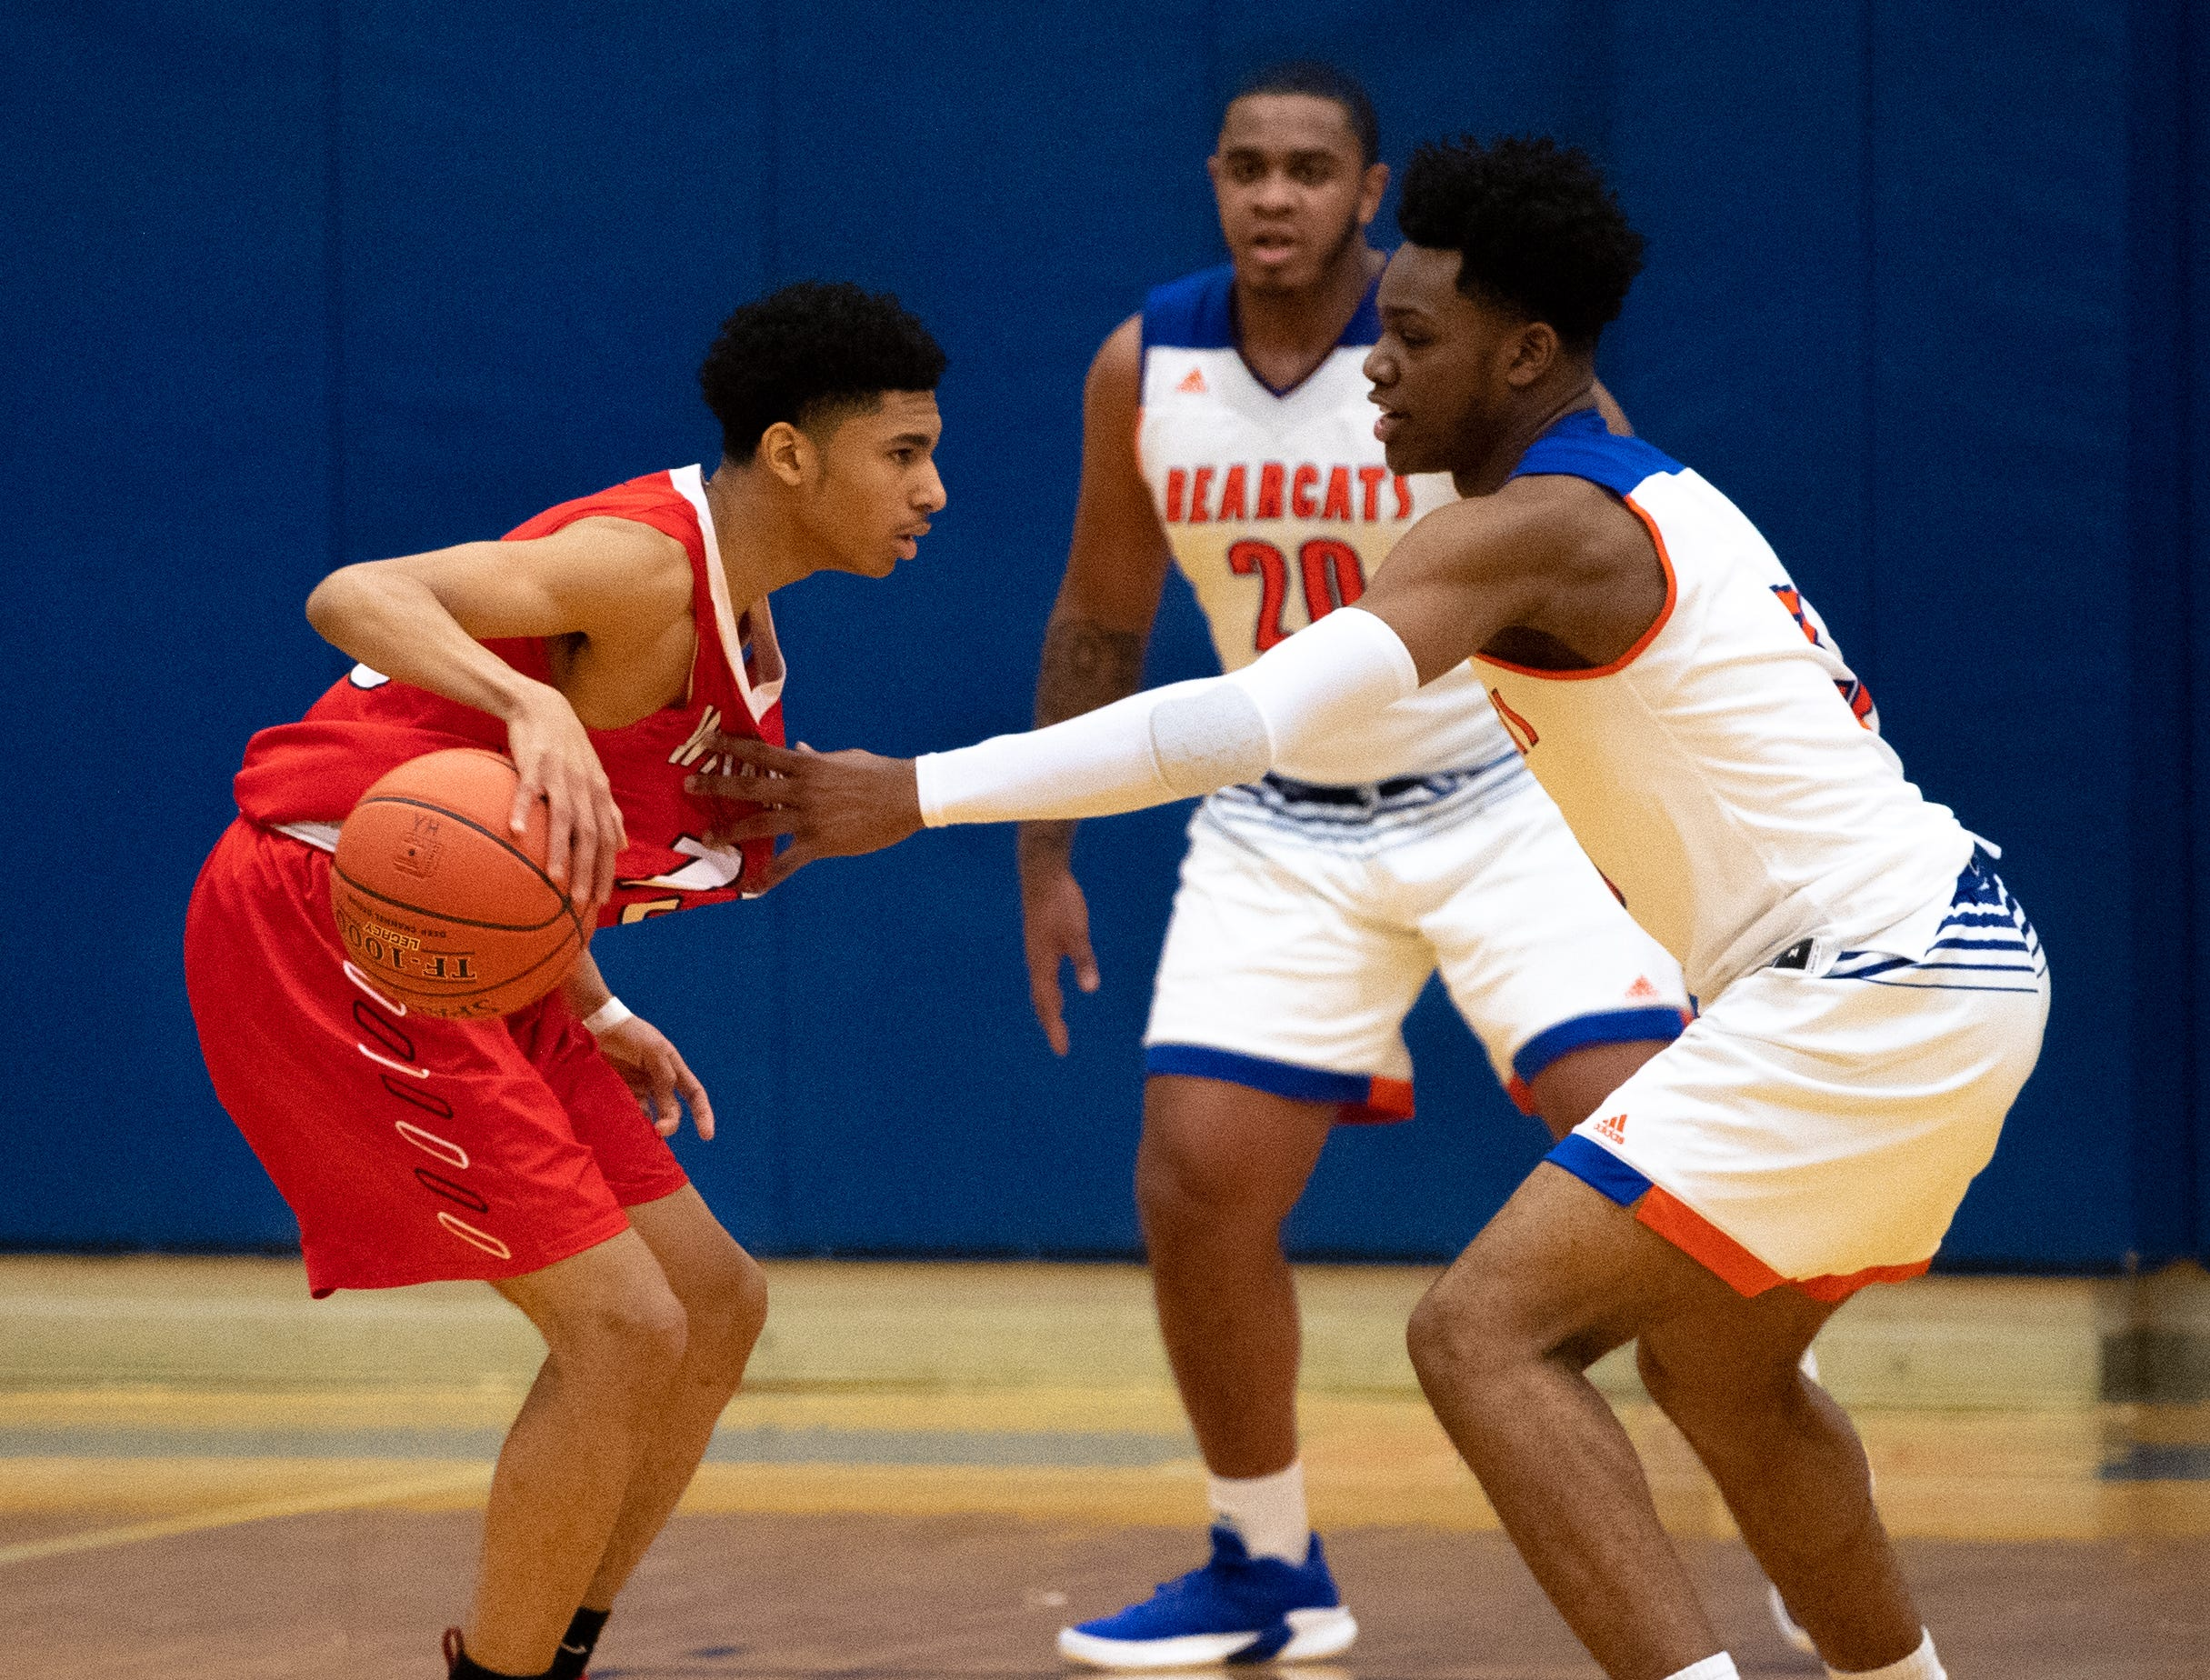 Clovis Gallon Jr. (3) of York High guards Ethan Williams (13) of Williamsport during the Tip-Off Tournament championship game, Saturday, December 8, 2018. The Bearcats defeated the Millionaires 74-47.